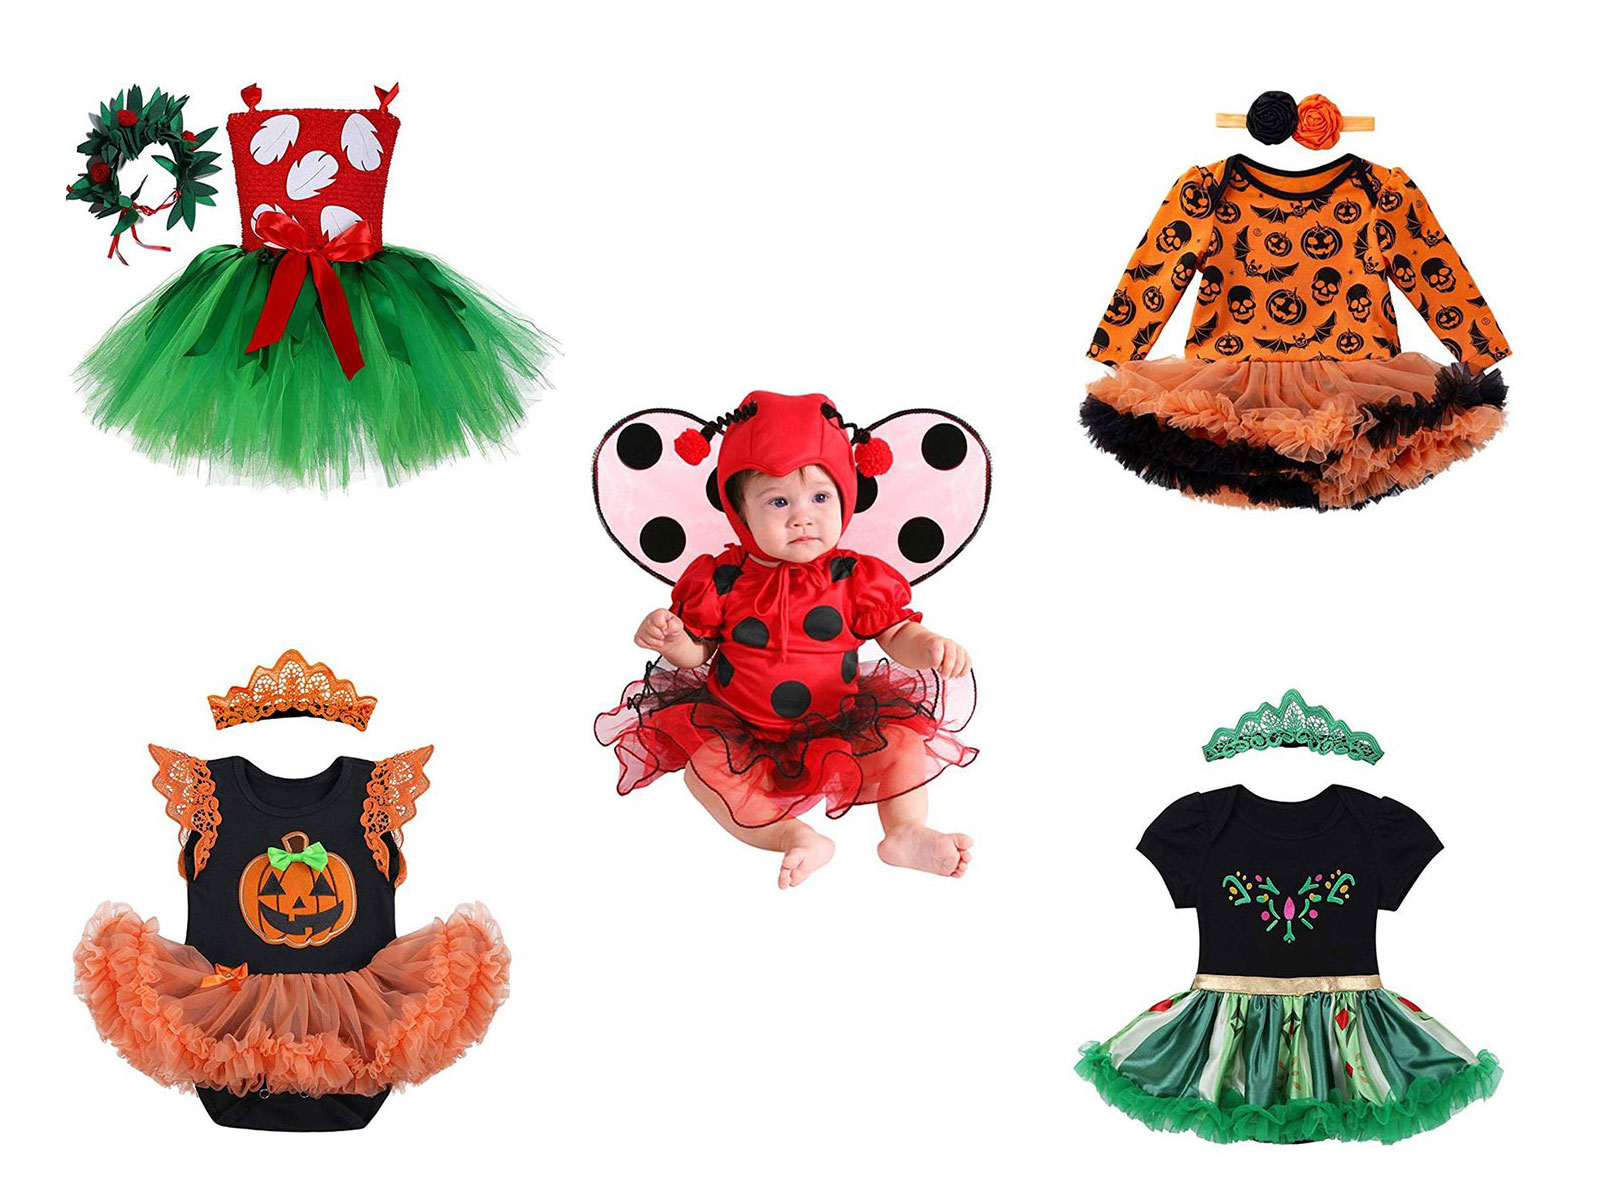 18-Unique-Halloween-Outfit-Costume-Ideas-For-Newborn-Infant-Girls-2019-F